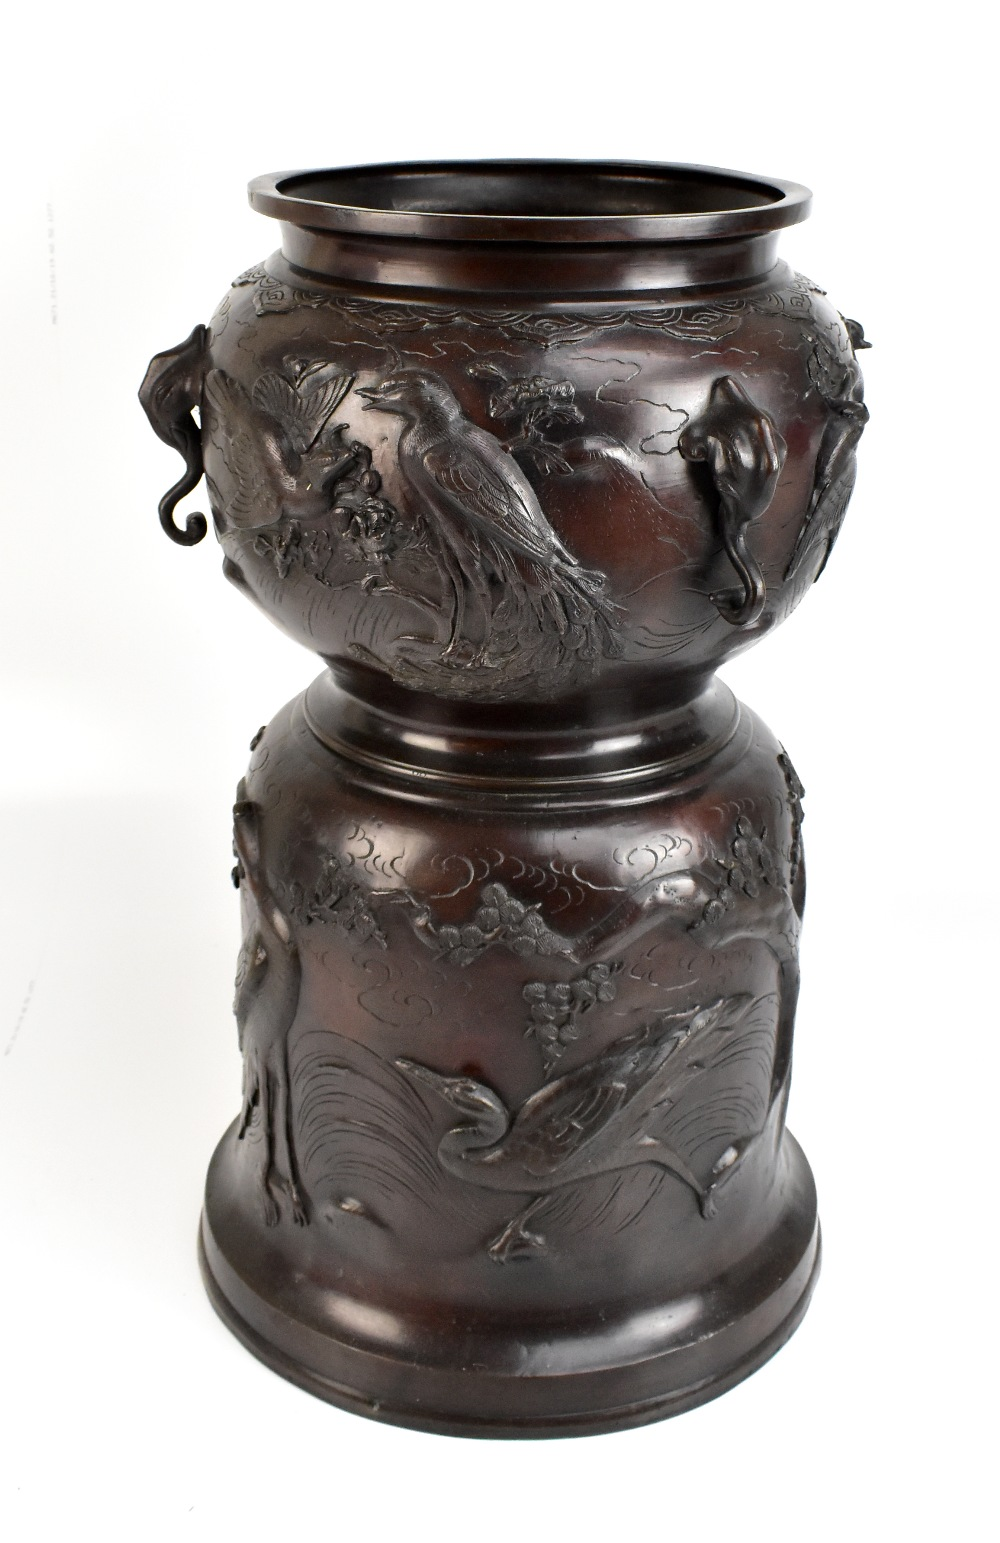 A good and large Japanese Meiji period bronze jardinière and stand cast in one, profusely